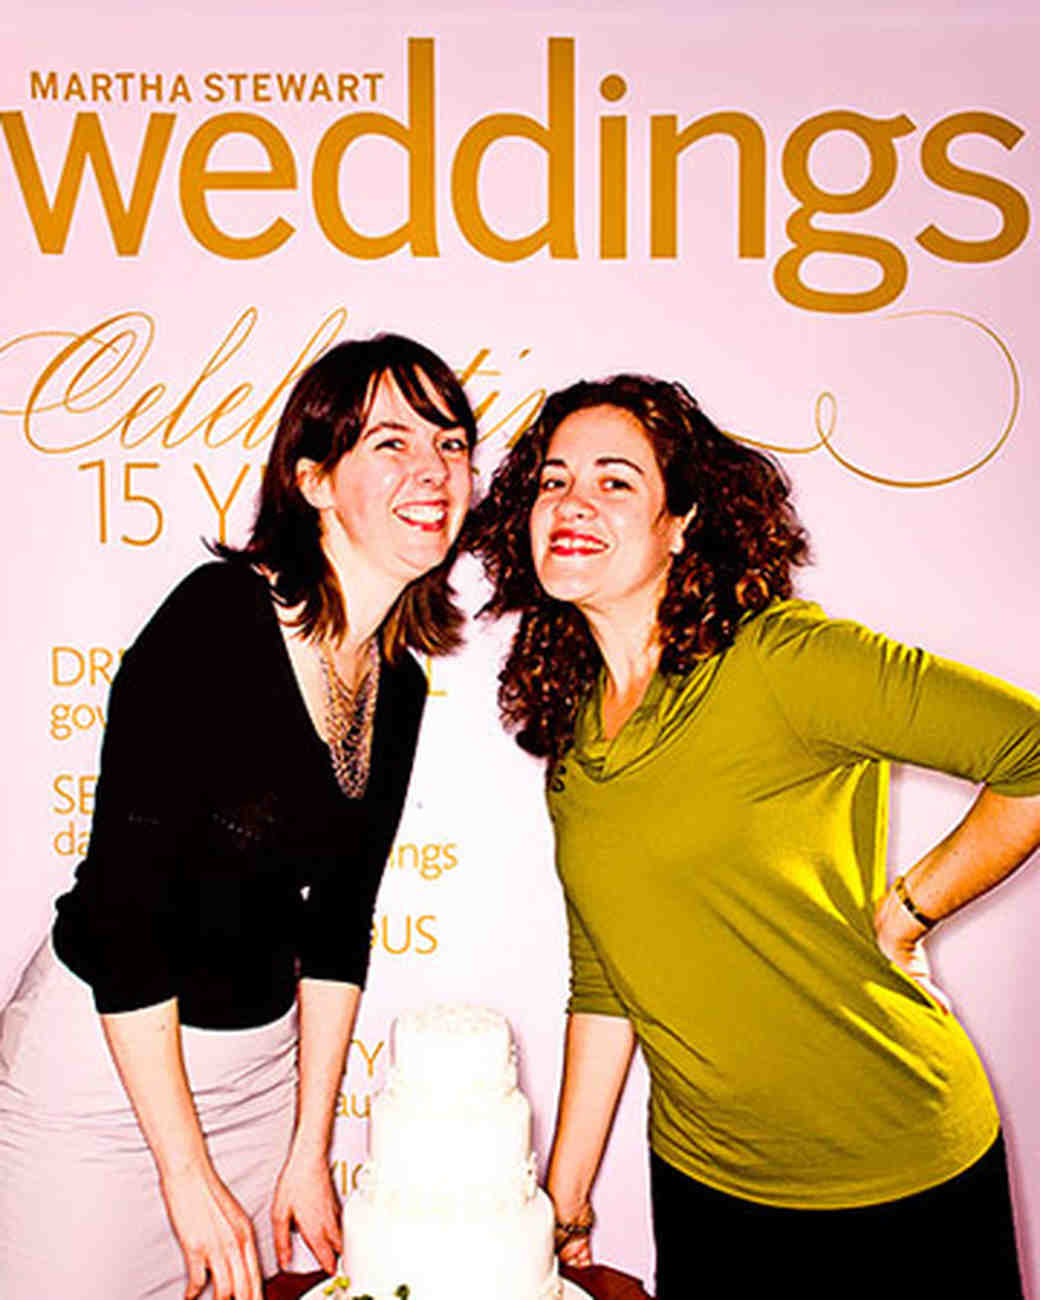 msw_15party_alex_kolawski_emily_martin_of_brides.jpg